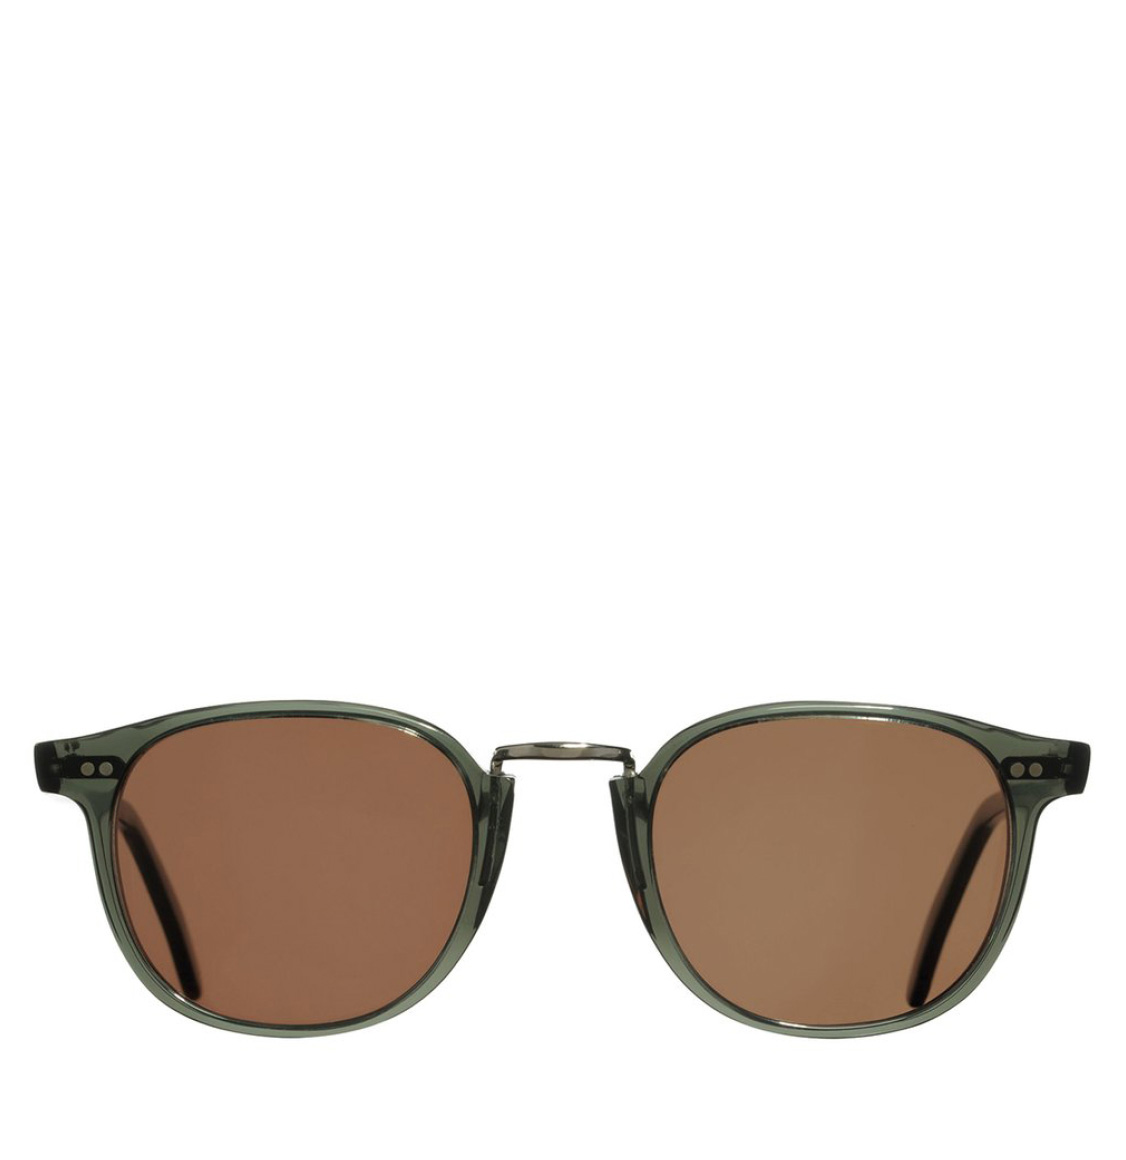 Cutler and Gross Round-Frame Aviator Blue Acetate Γυαλιά Ηλίου